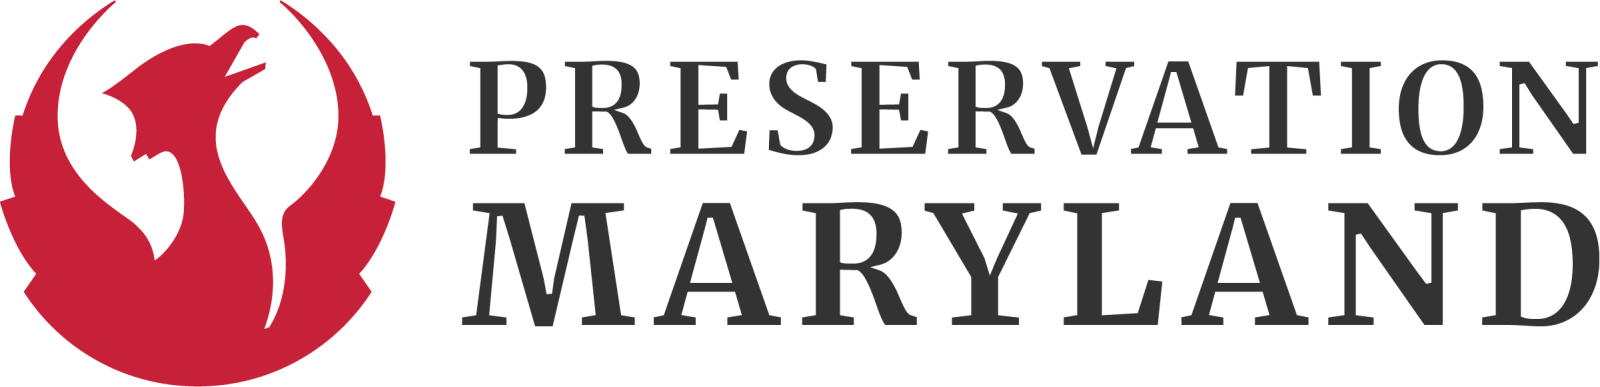 Preservation Maryland Advocacy